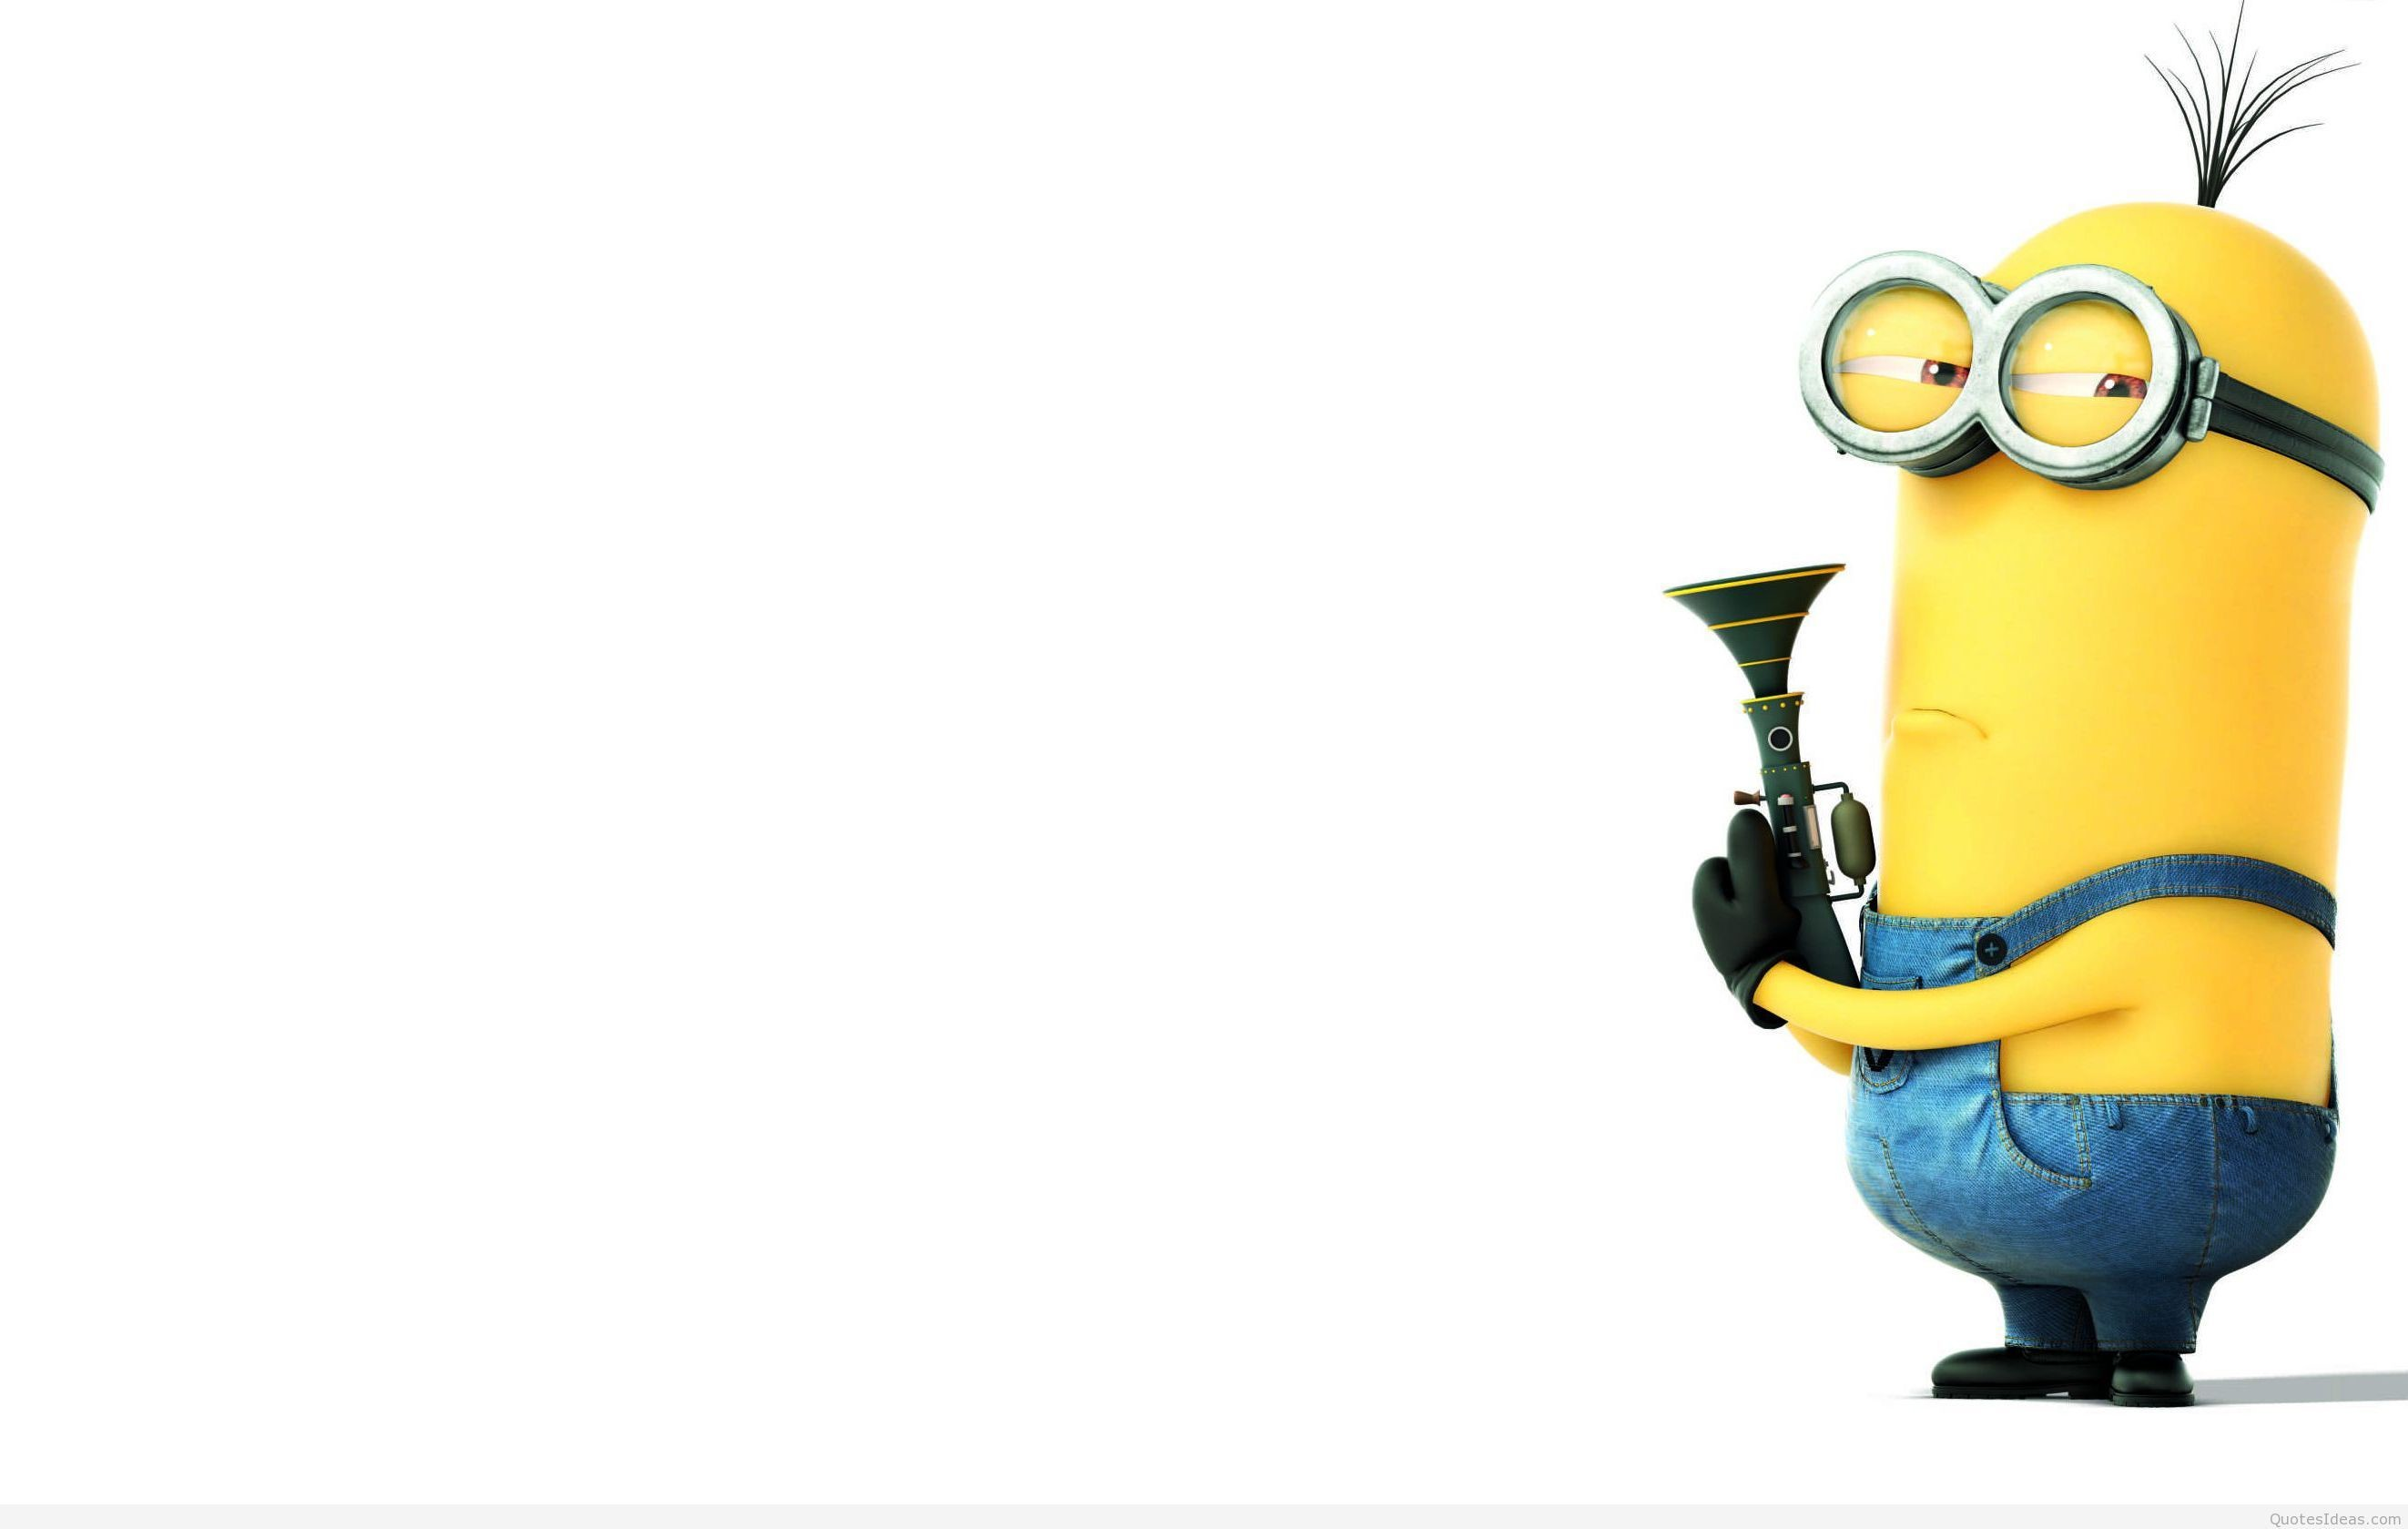 Res: 2645x1679, Minion Wallpaper HD Minion Wallpapers and Photos View High